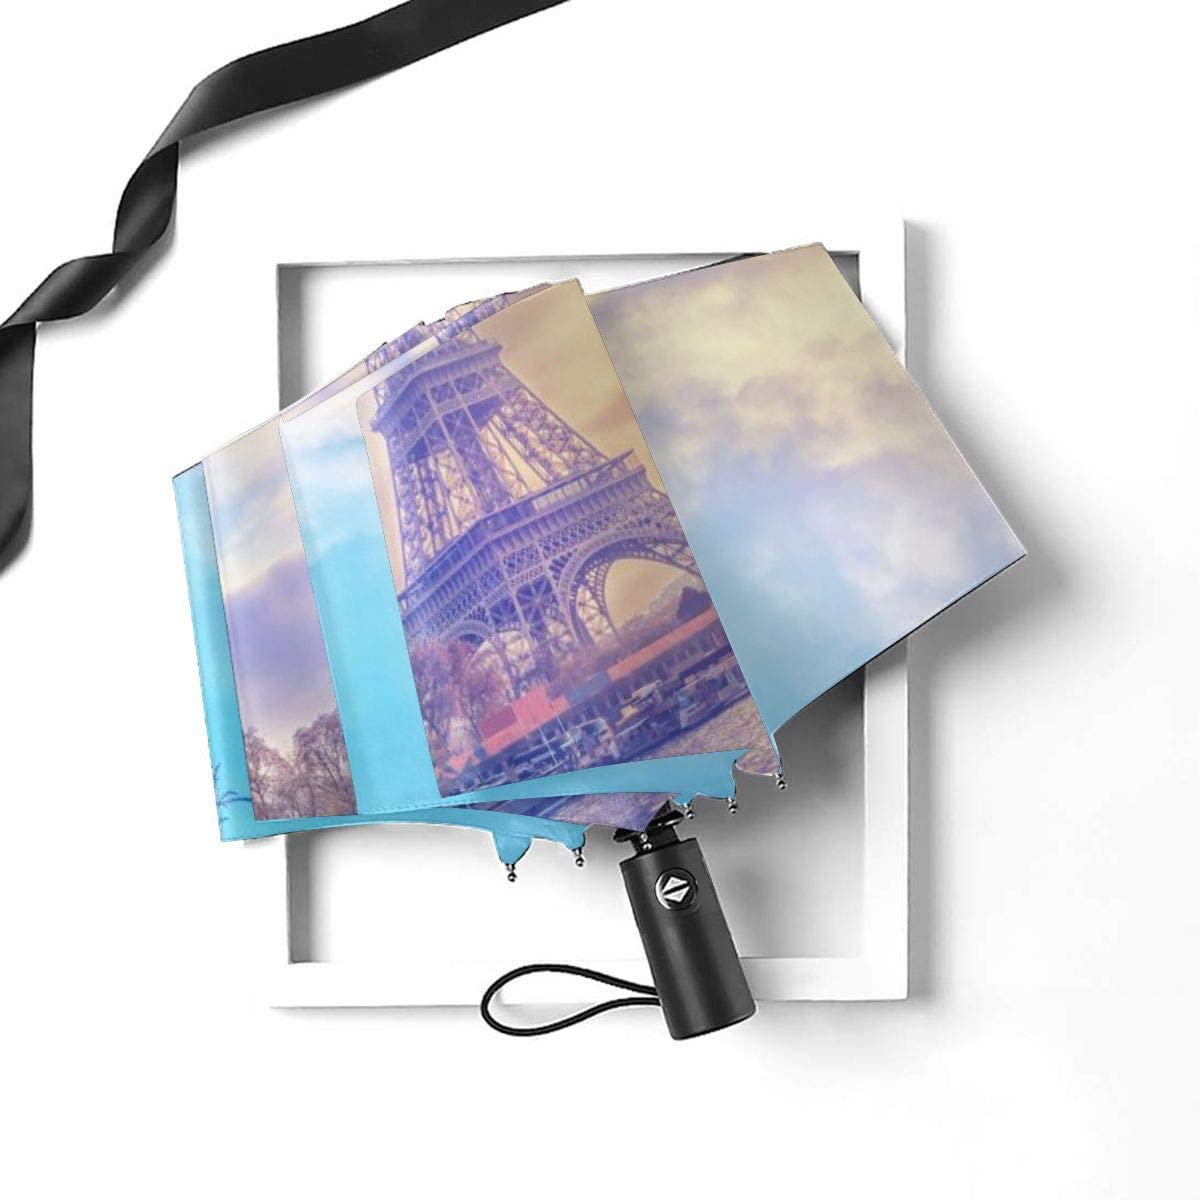 Pattonef Eiffel Tower At Sunset In Paris Romantic Travel Compact Travel Umbrella Windproof Reinforced Canopy 8 Ribs Umbrella Auto Open And Close Button Customized